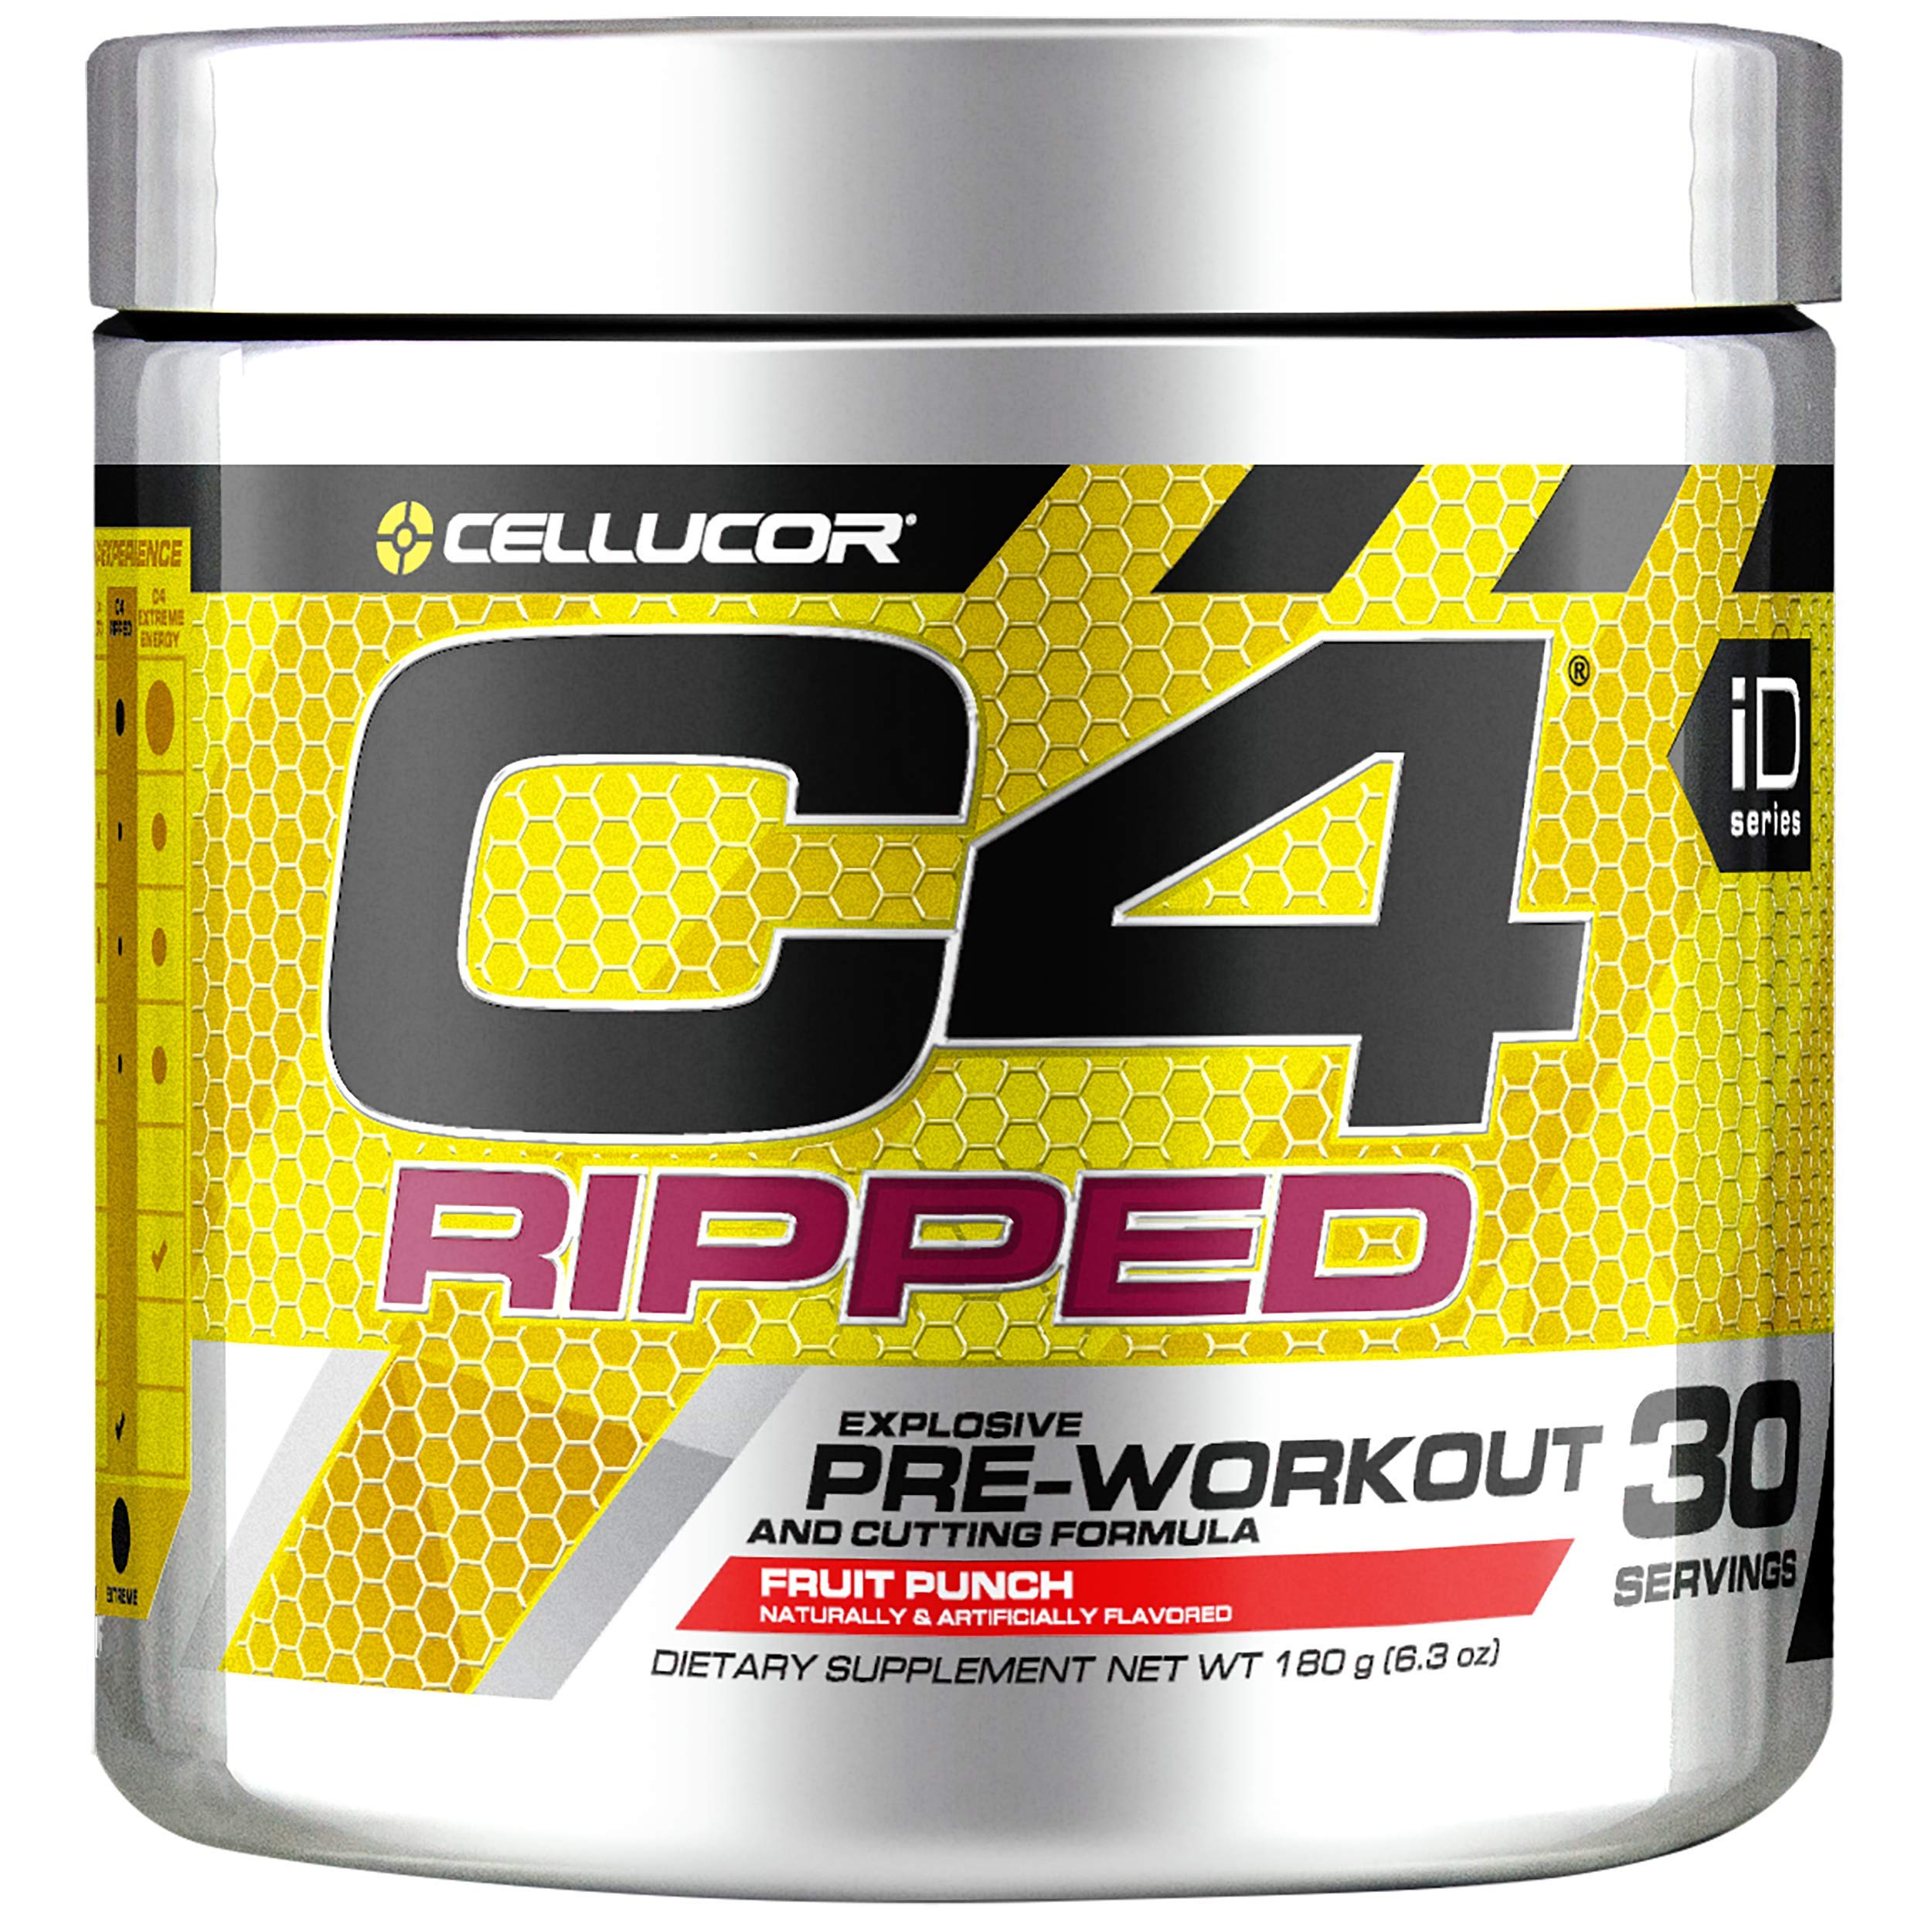 Cellucor C4 Ripped Pre Workout Powder, Fruit Punch, 30 Servings - Preworkout Powder for Men & Women with Green Coffee Bean Extract & L Carnitine by Cellucor